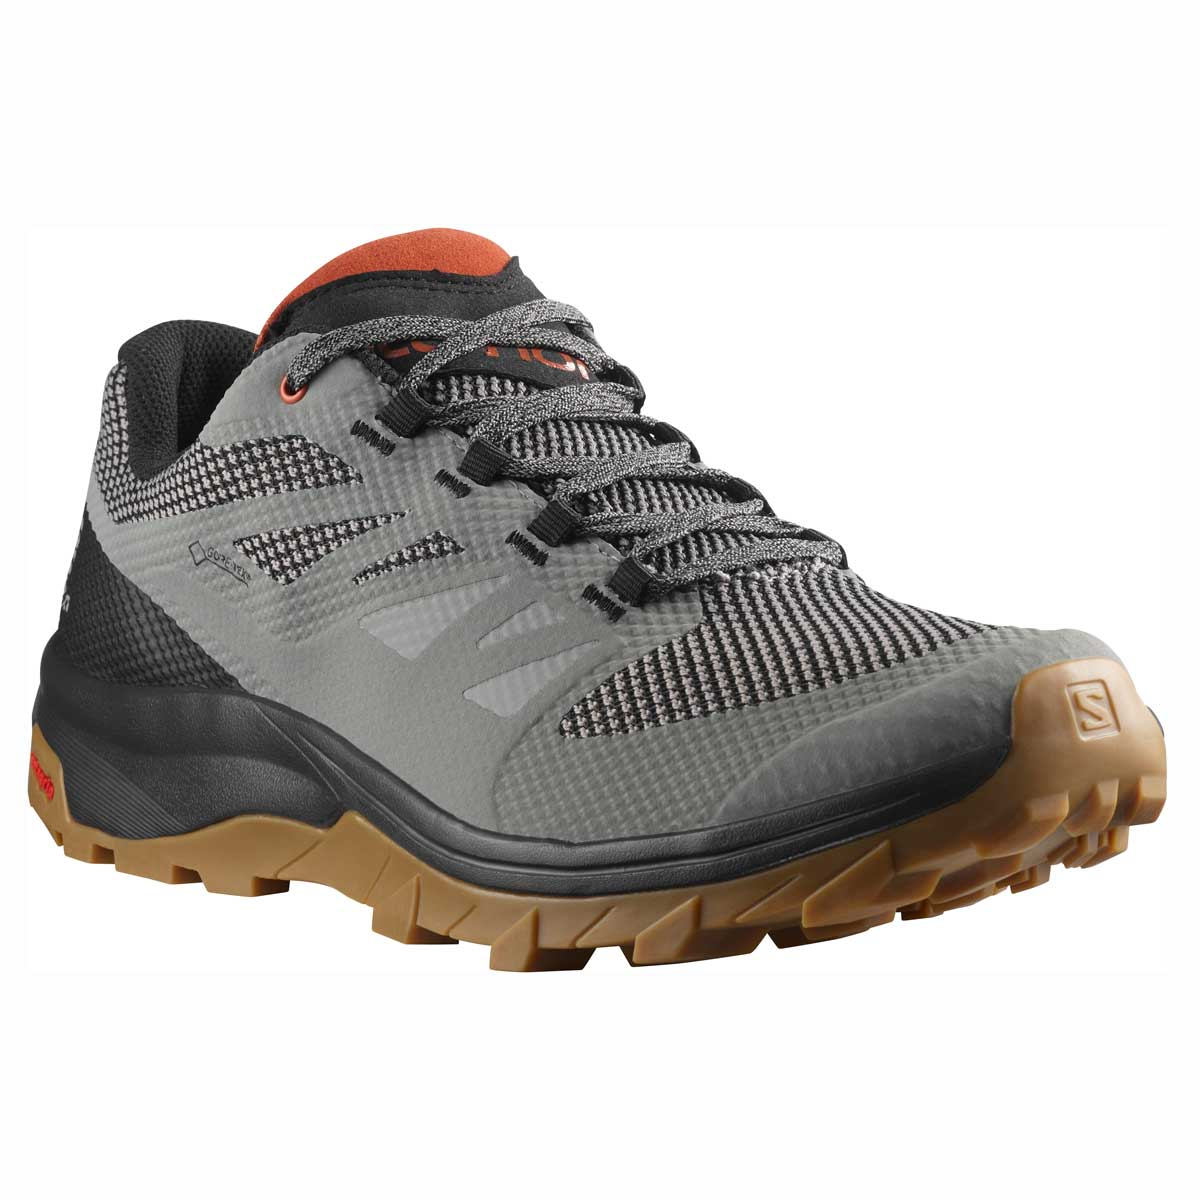 Salomon men's Outline GTX hiking shoe in Frost Grey and Black and Burnt Brick